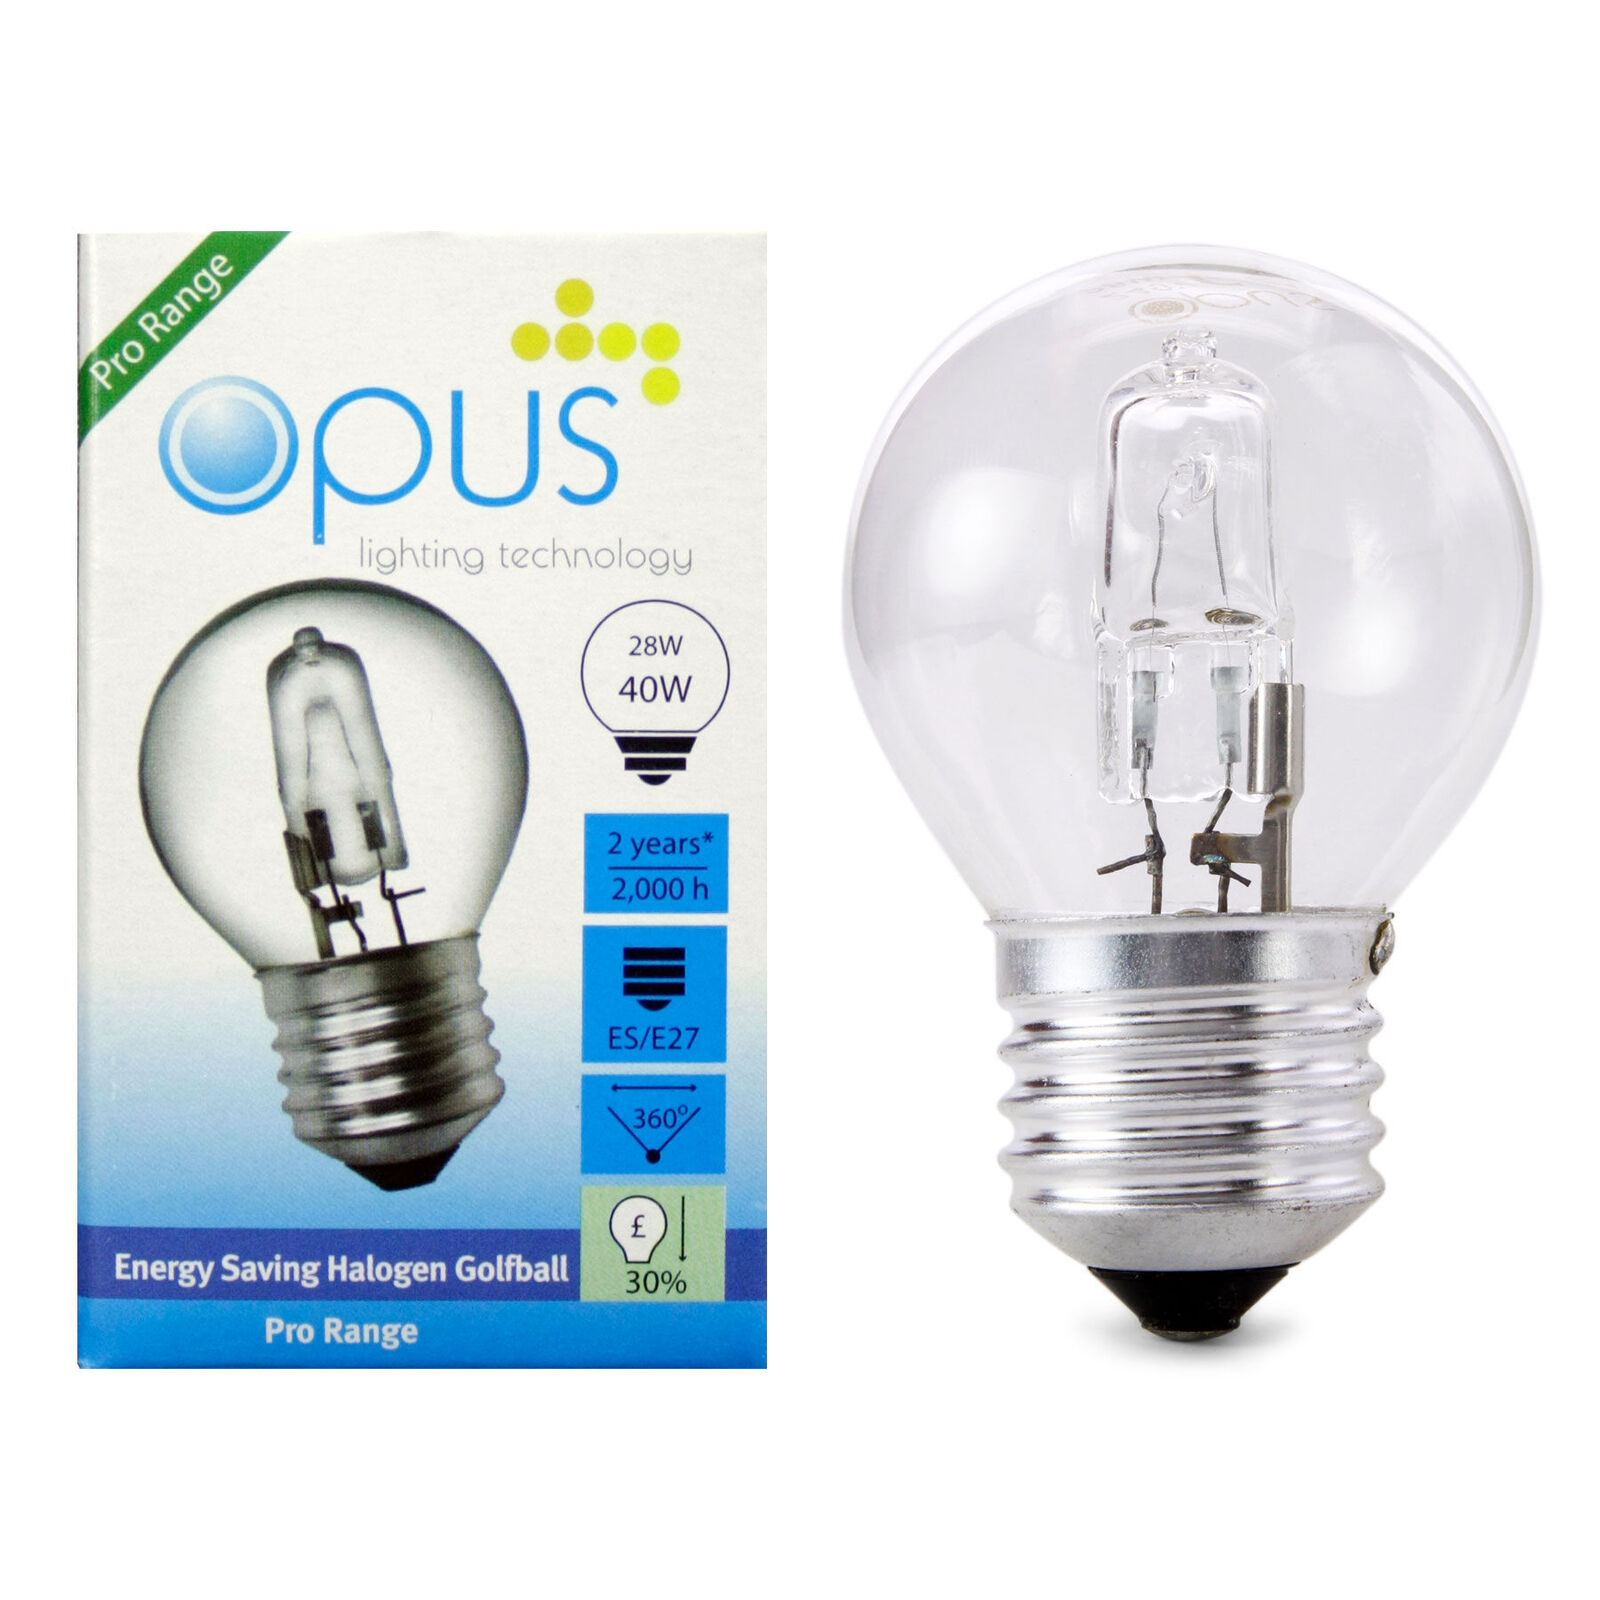 10 x Opus 33w= 40w Candle SES E14 Small Screw Long Life Clear Halogen Light Bulb